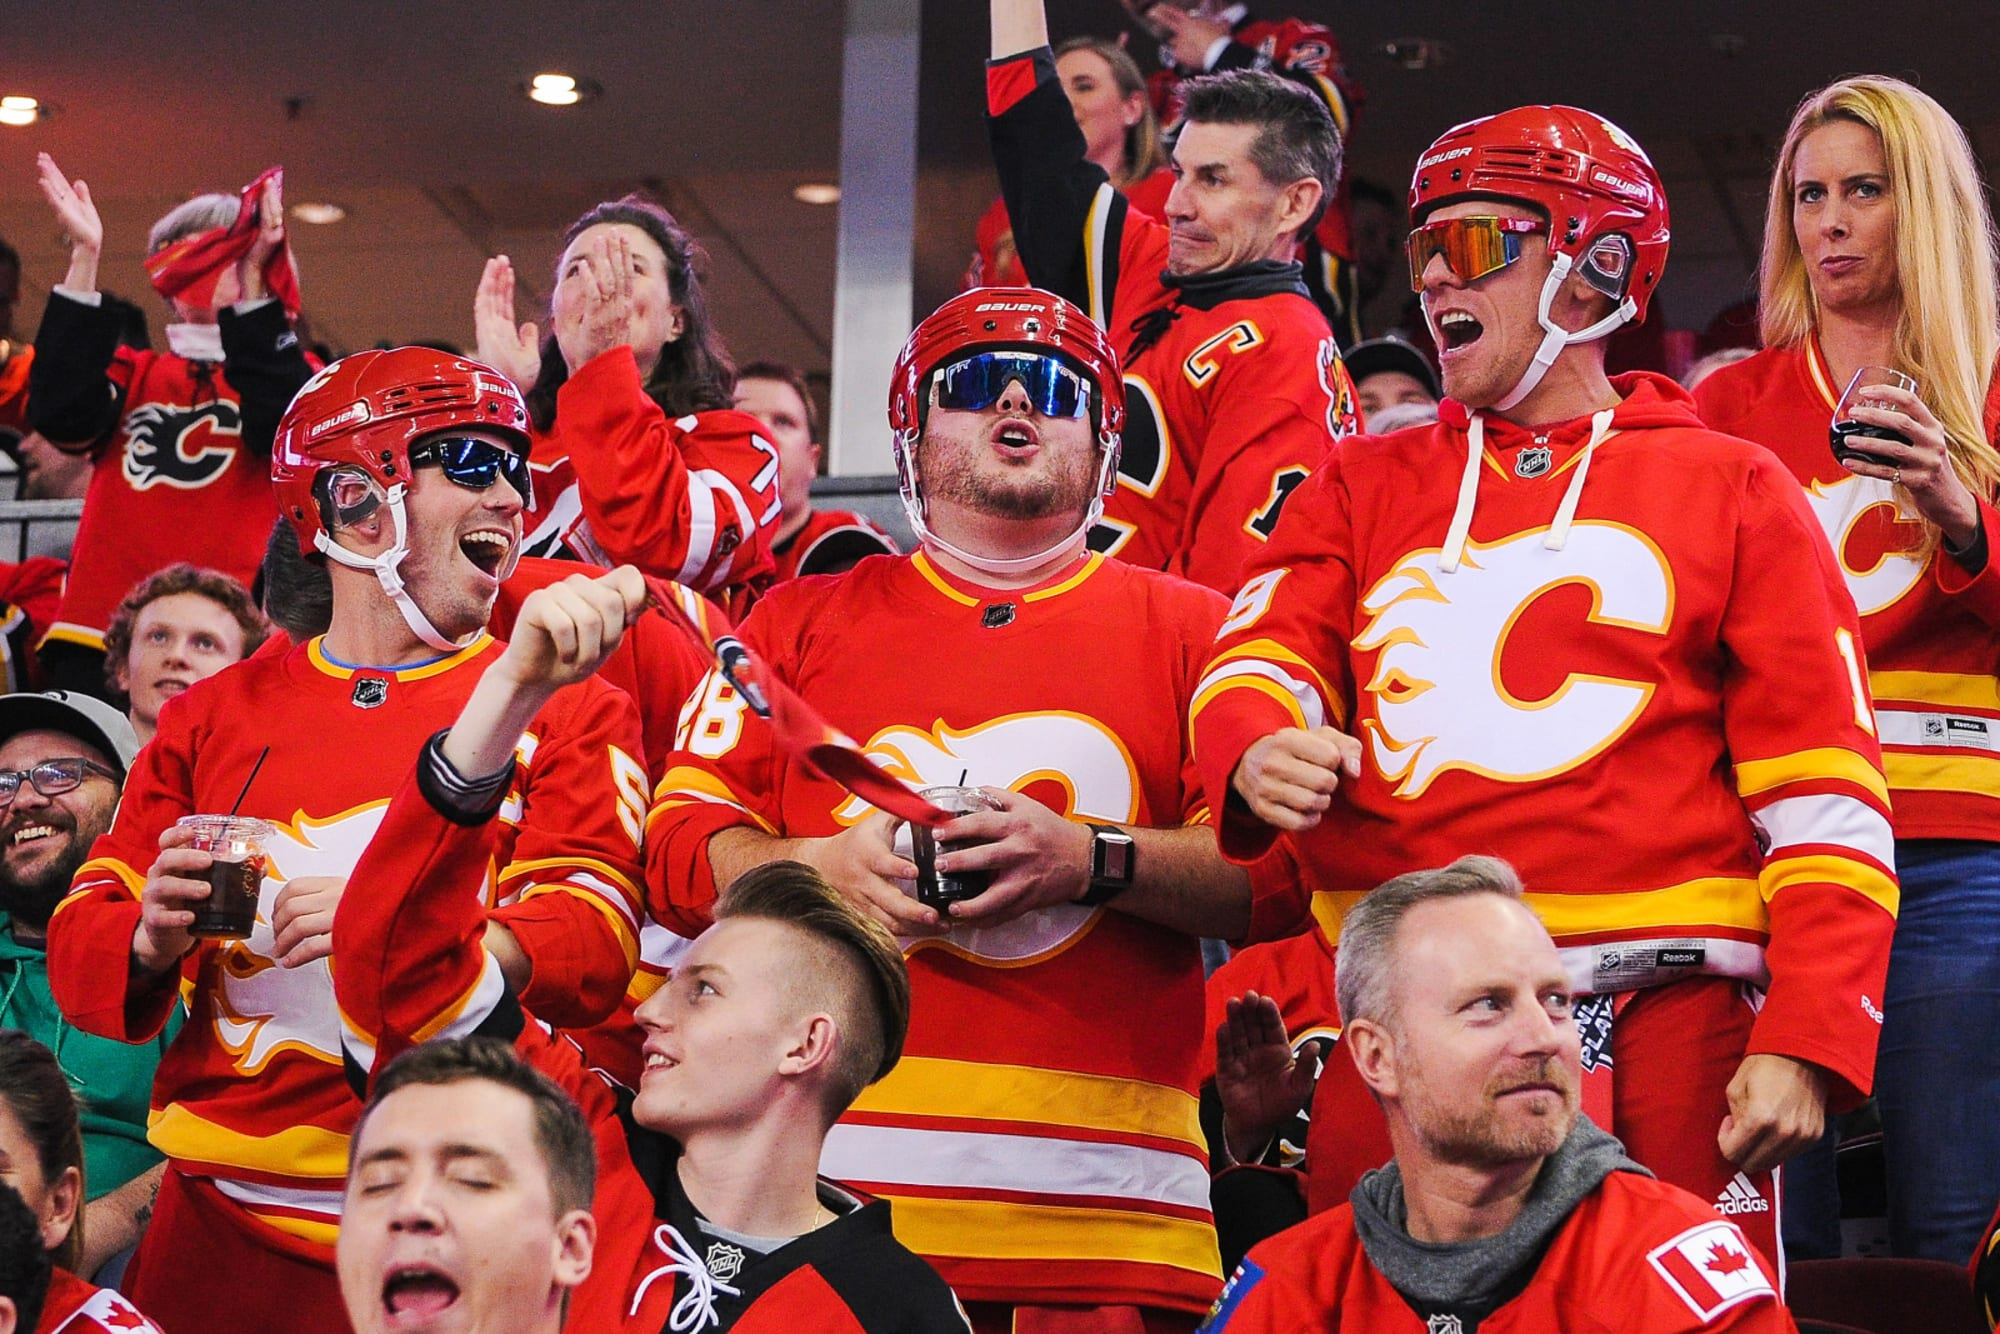 When will NHL fans be able to come back to arenas?